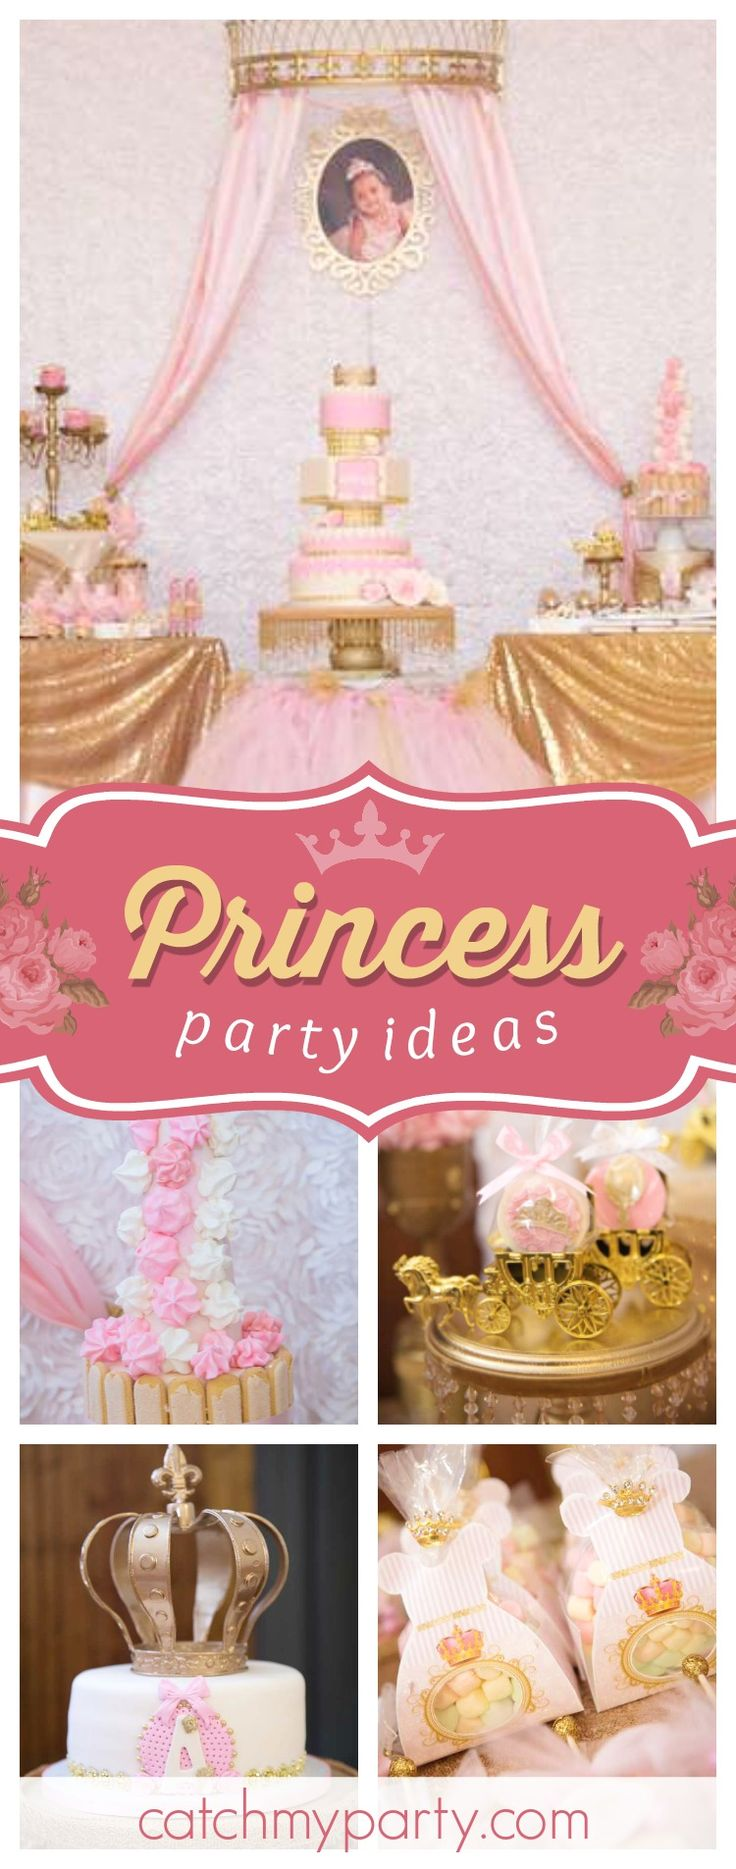 Don't miss this pretty Royal Princess birthday party! The cake is absolutely amazing!! See more party ideas and share yours at CatchMyParty.com #princess #1stbirthday